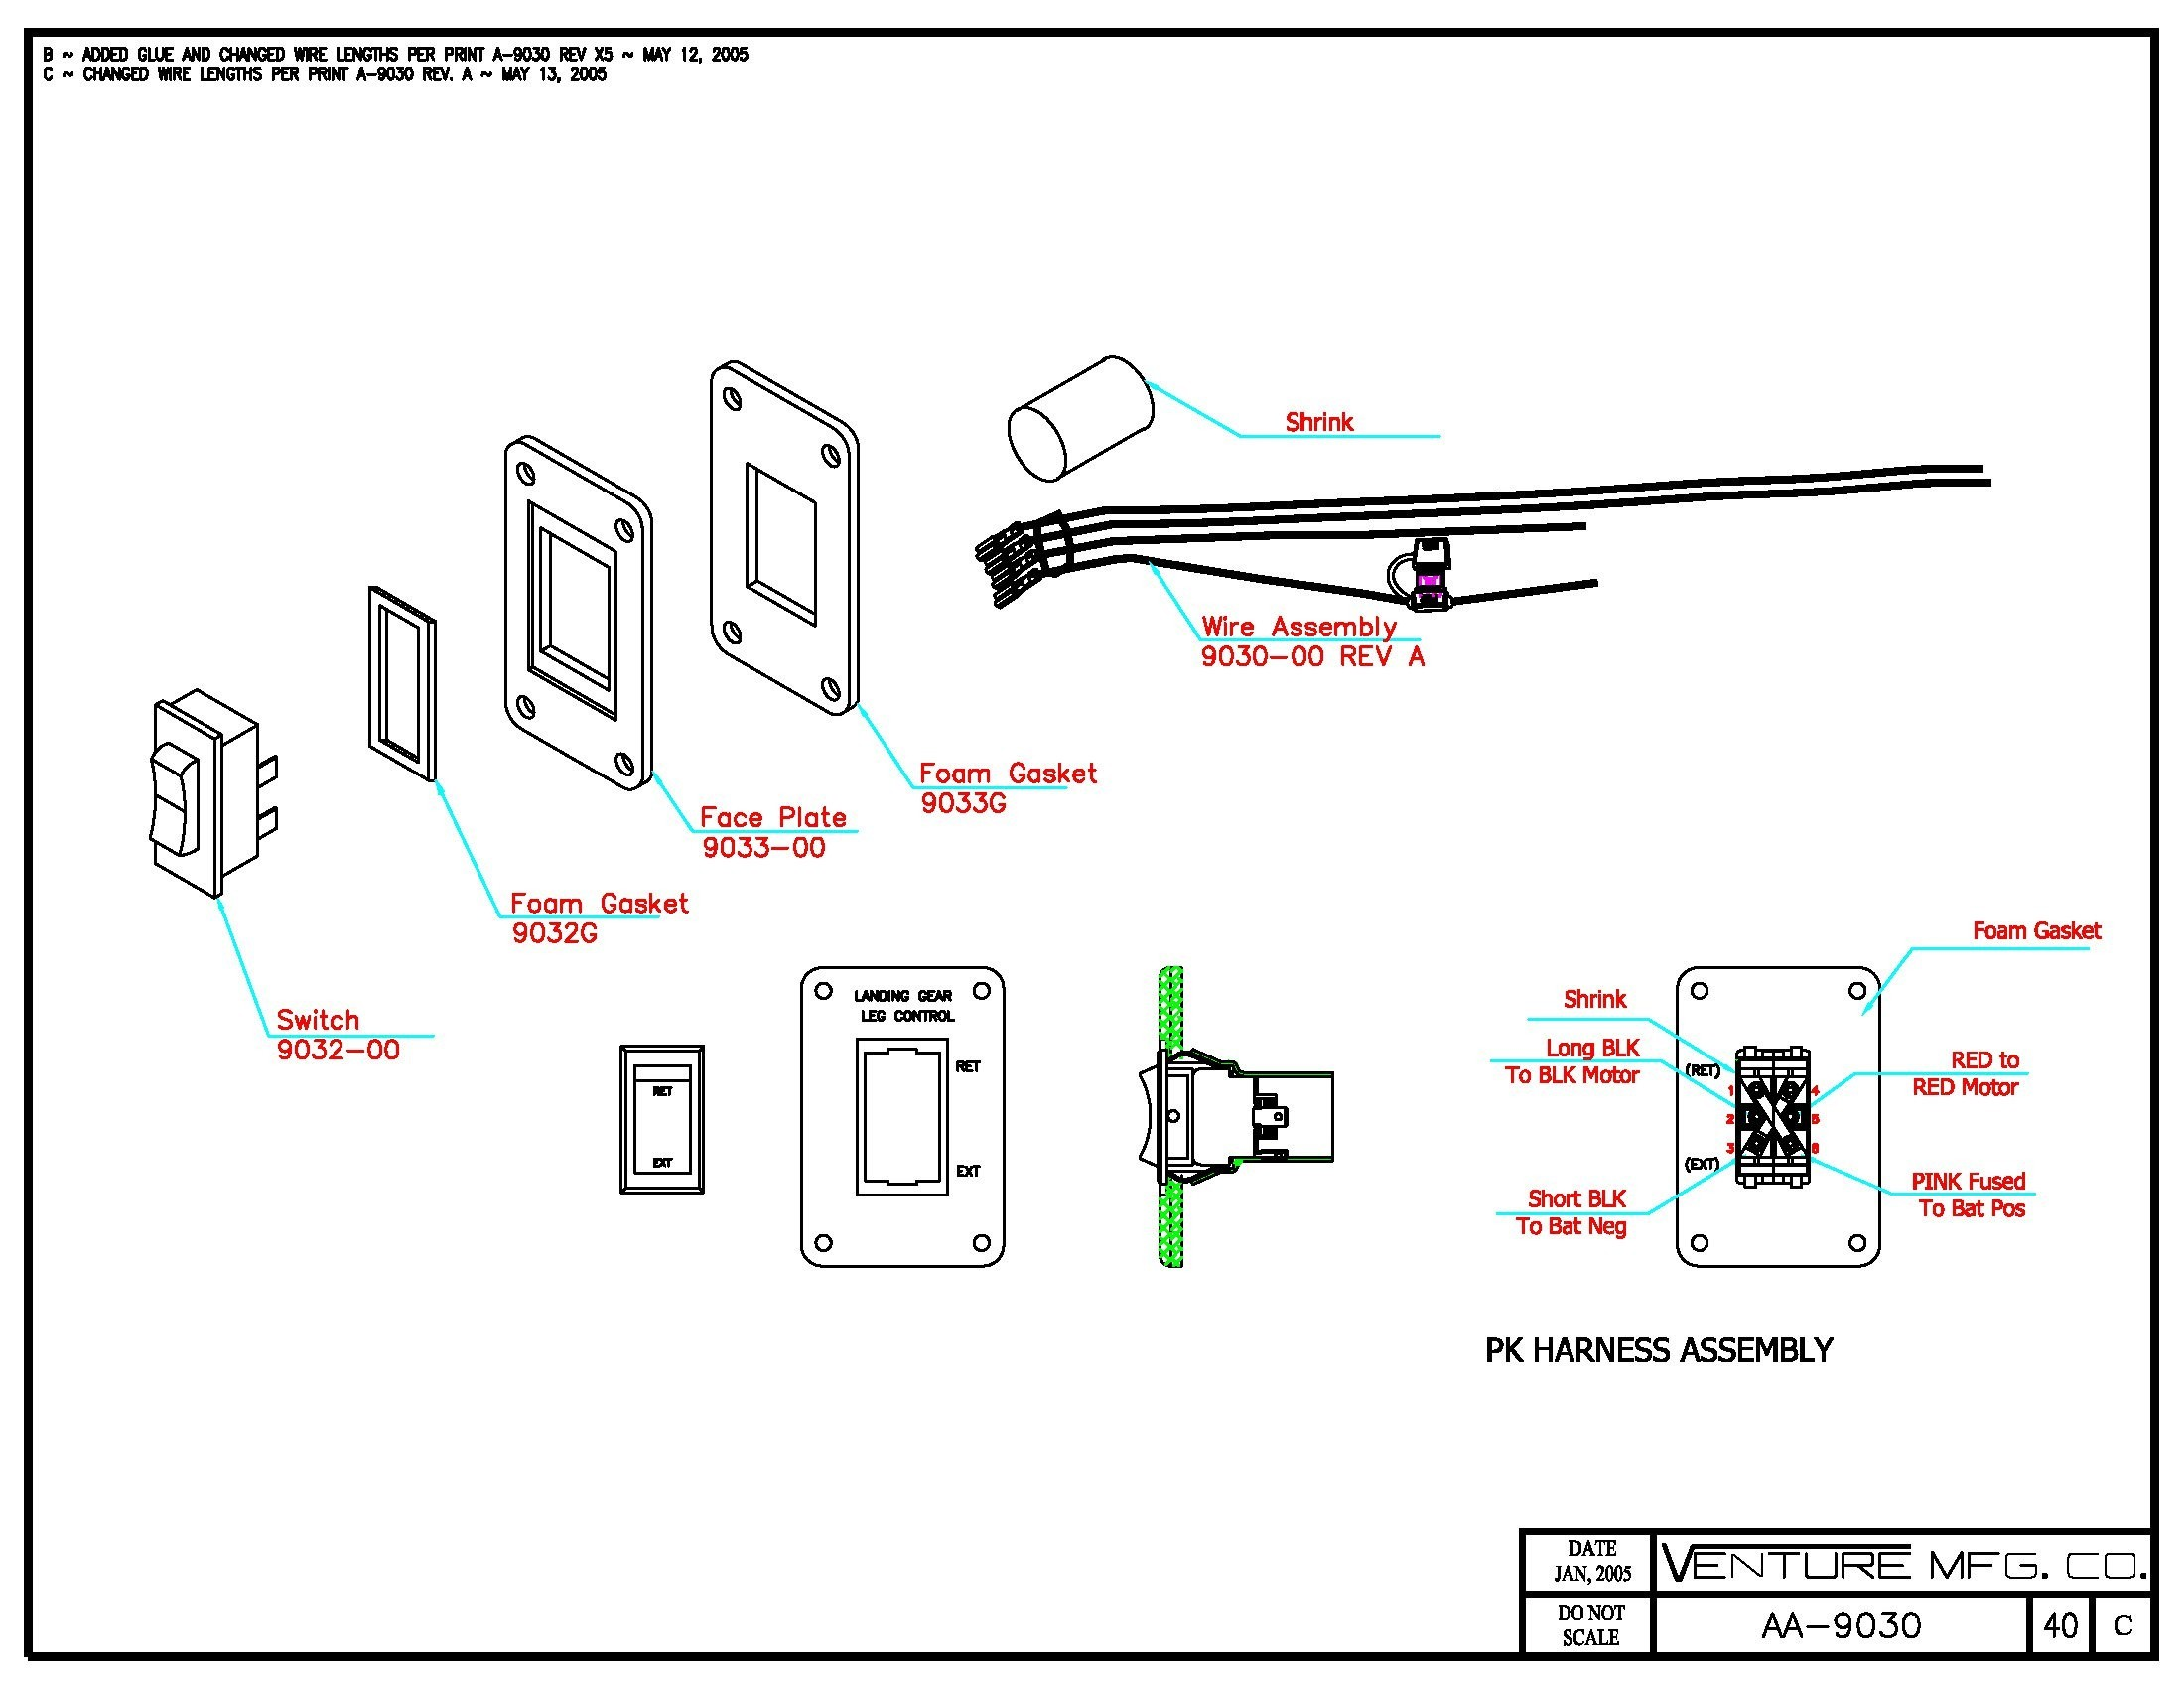 Camper Slide Diagram Wiring Data Schema Pin Trailer Plug Additionally Rv Out Systems On Rh Abetter Pw 7 Wire With Brakes